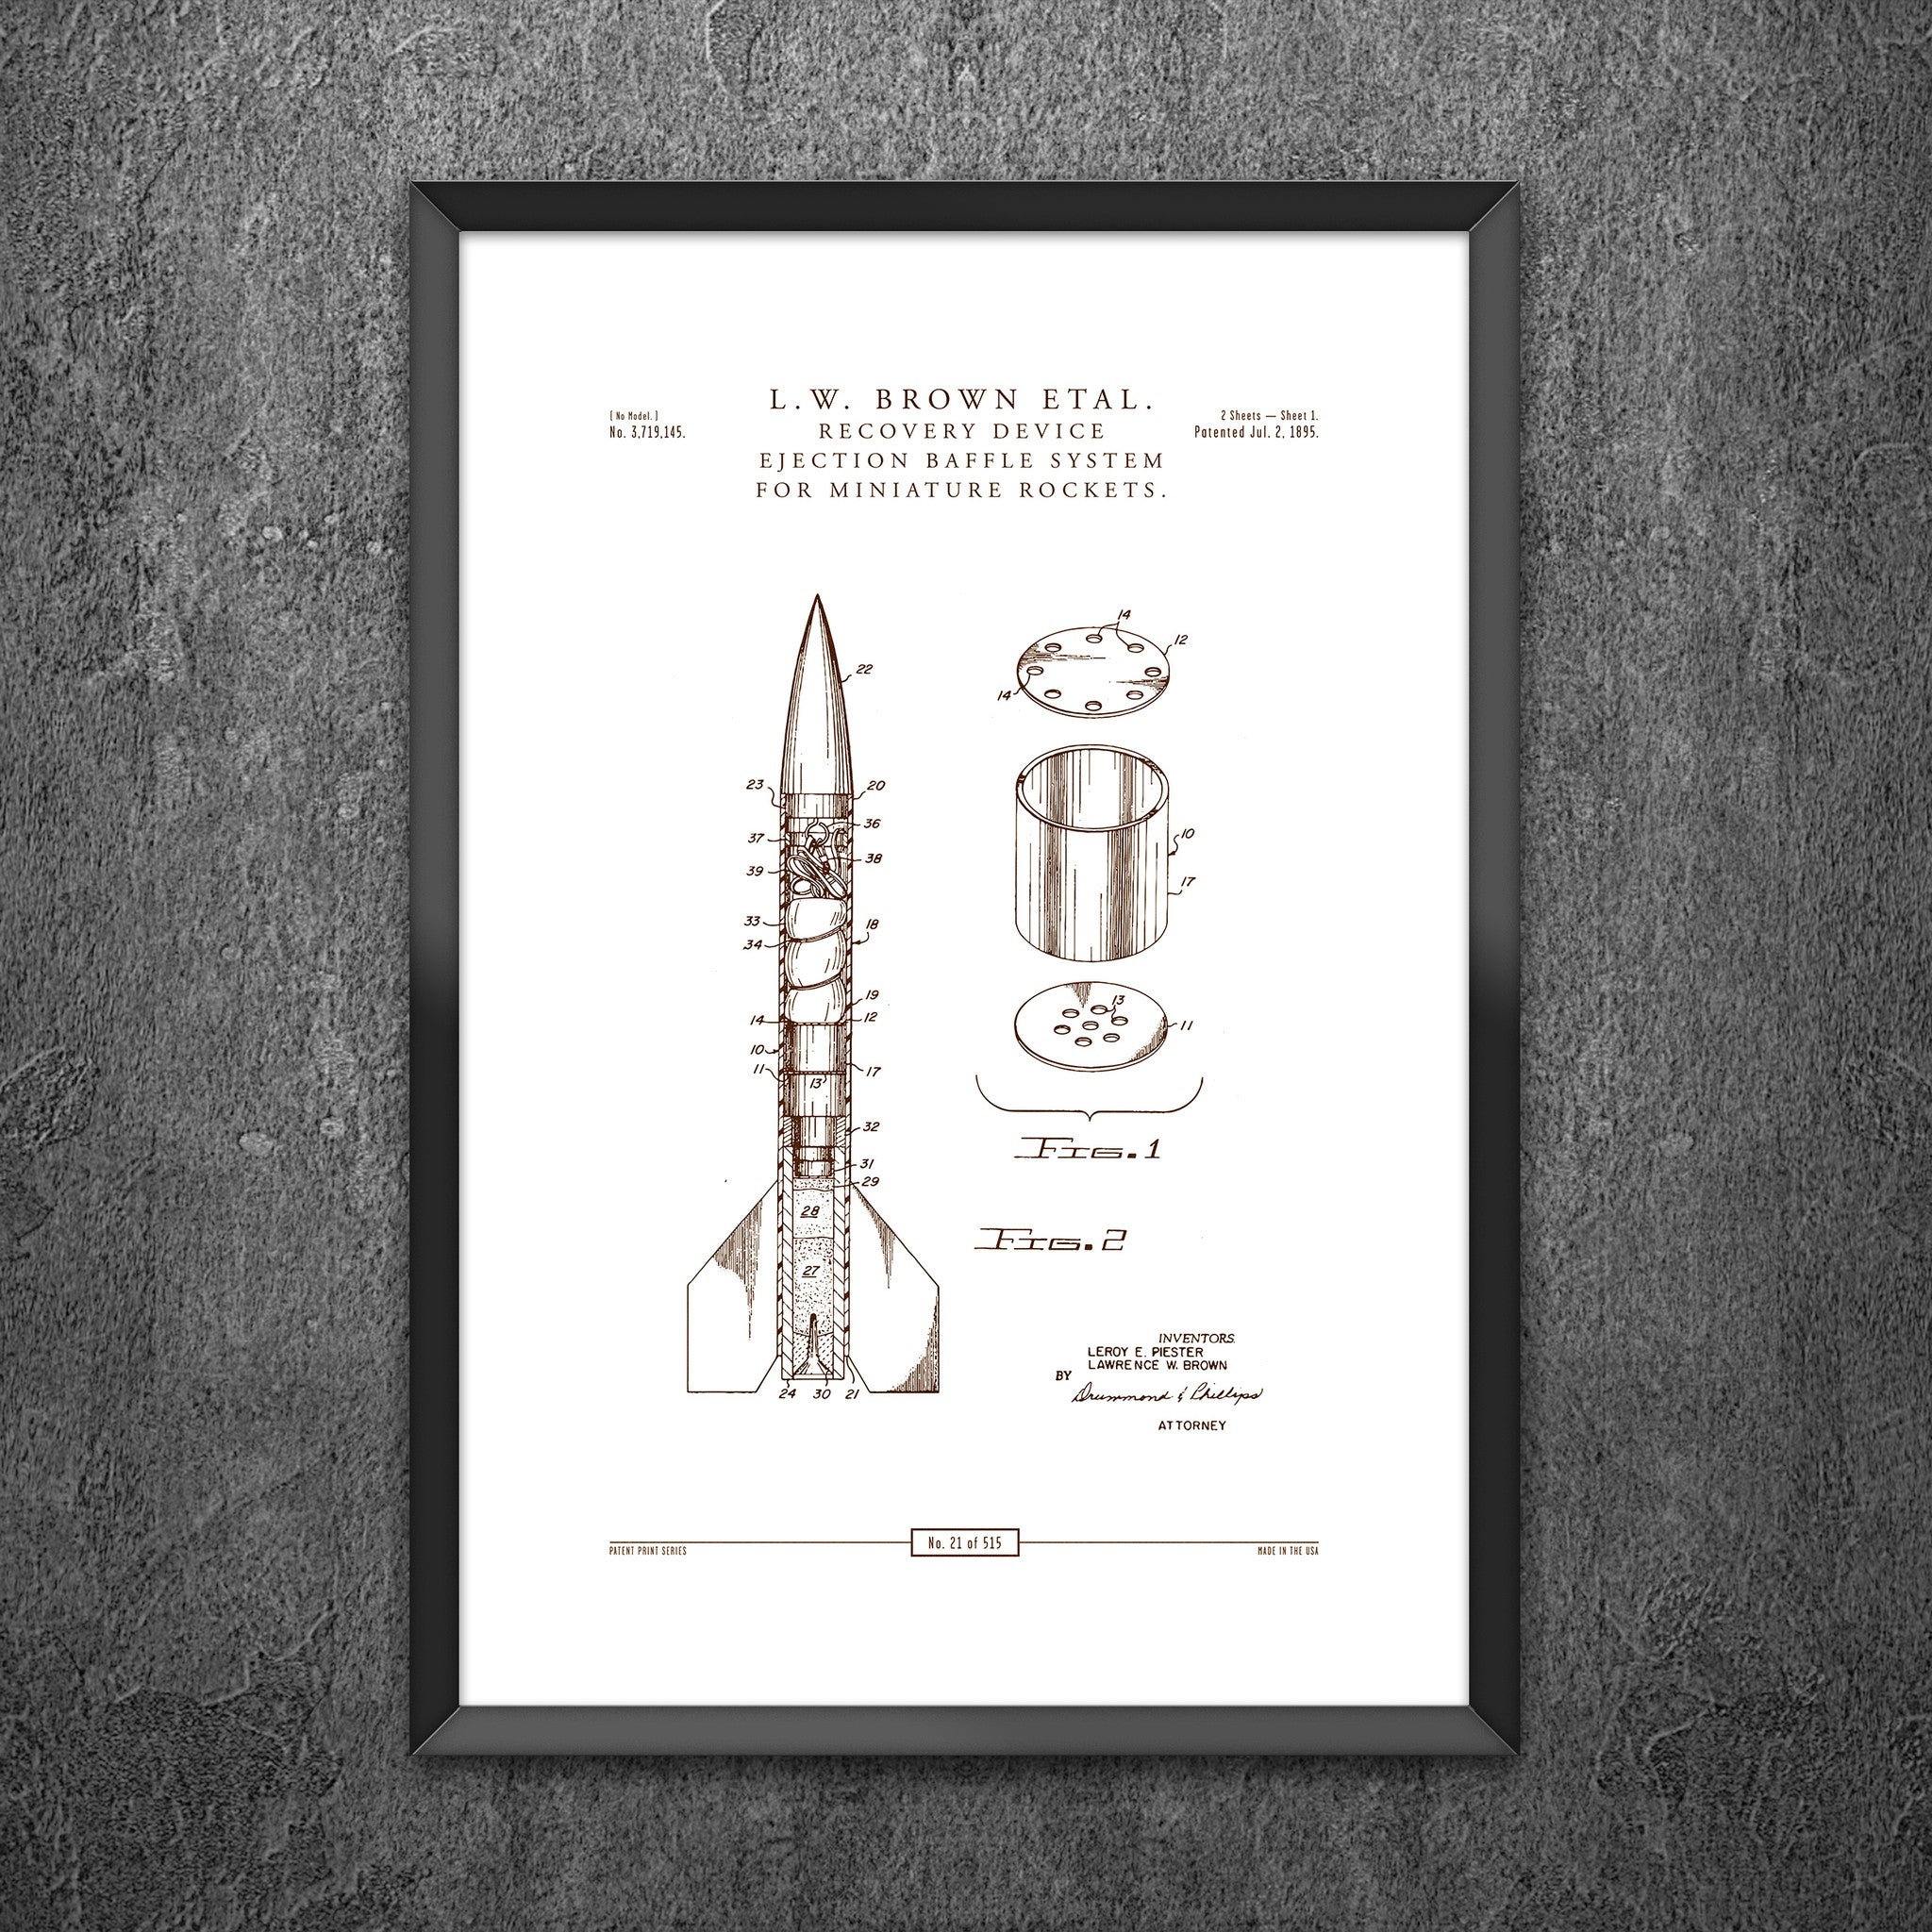 No 21 - Miniature Rocket